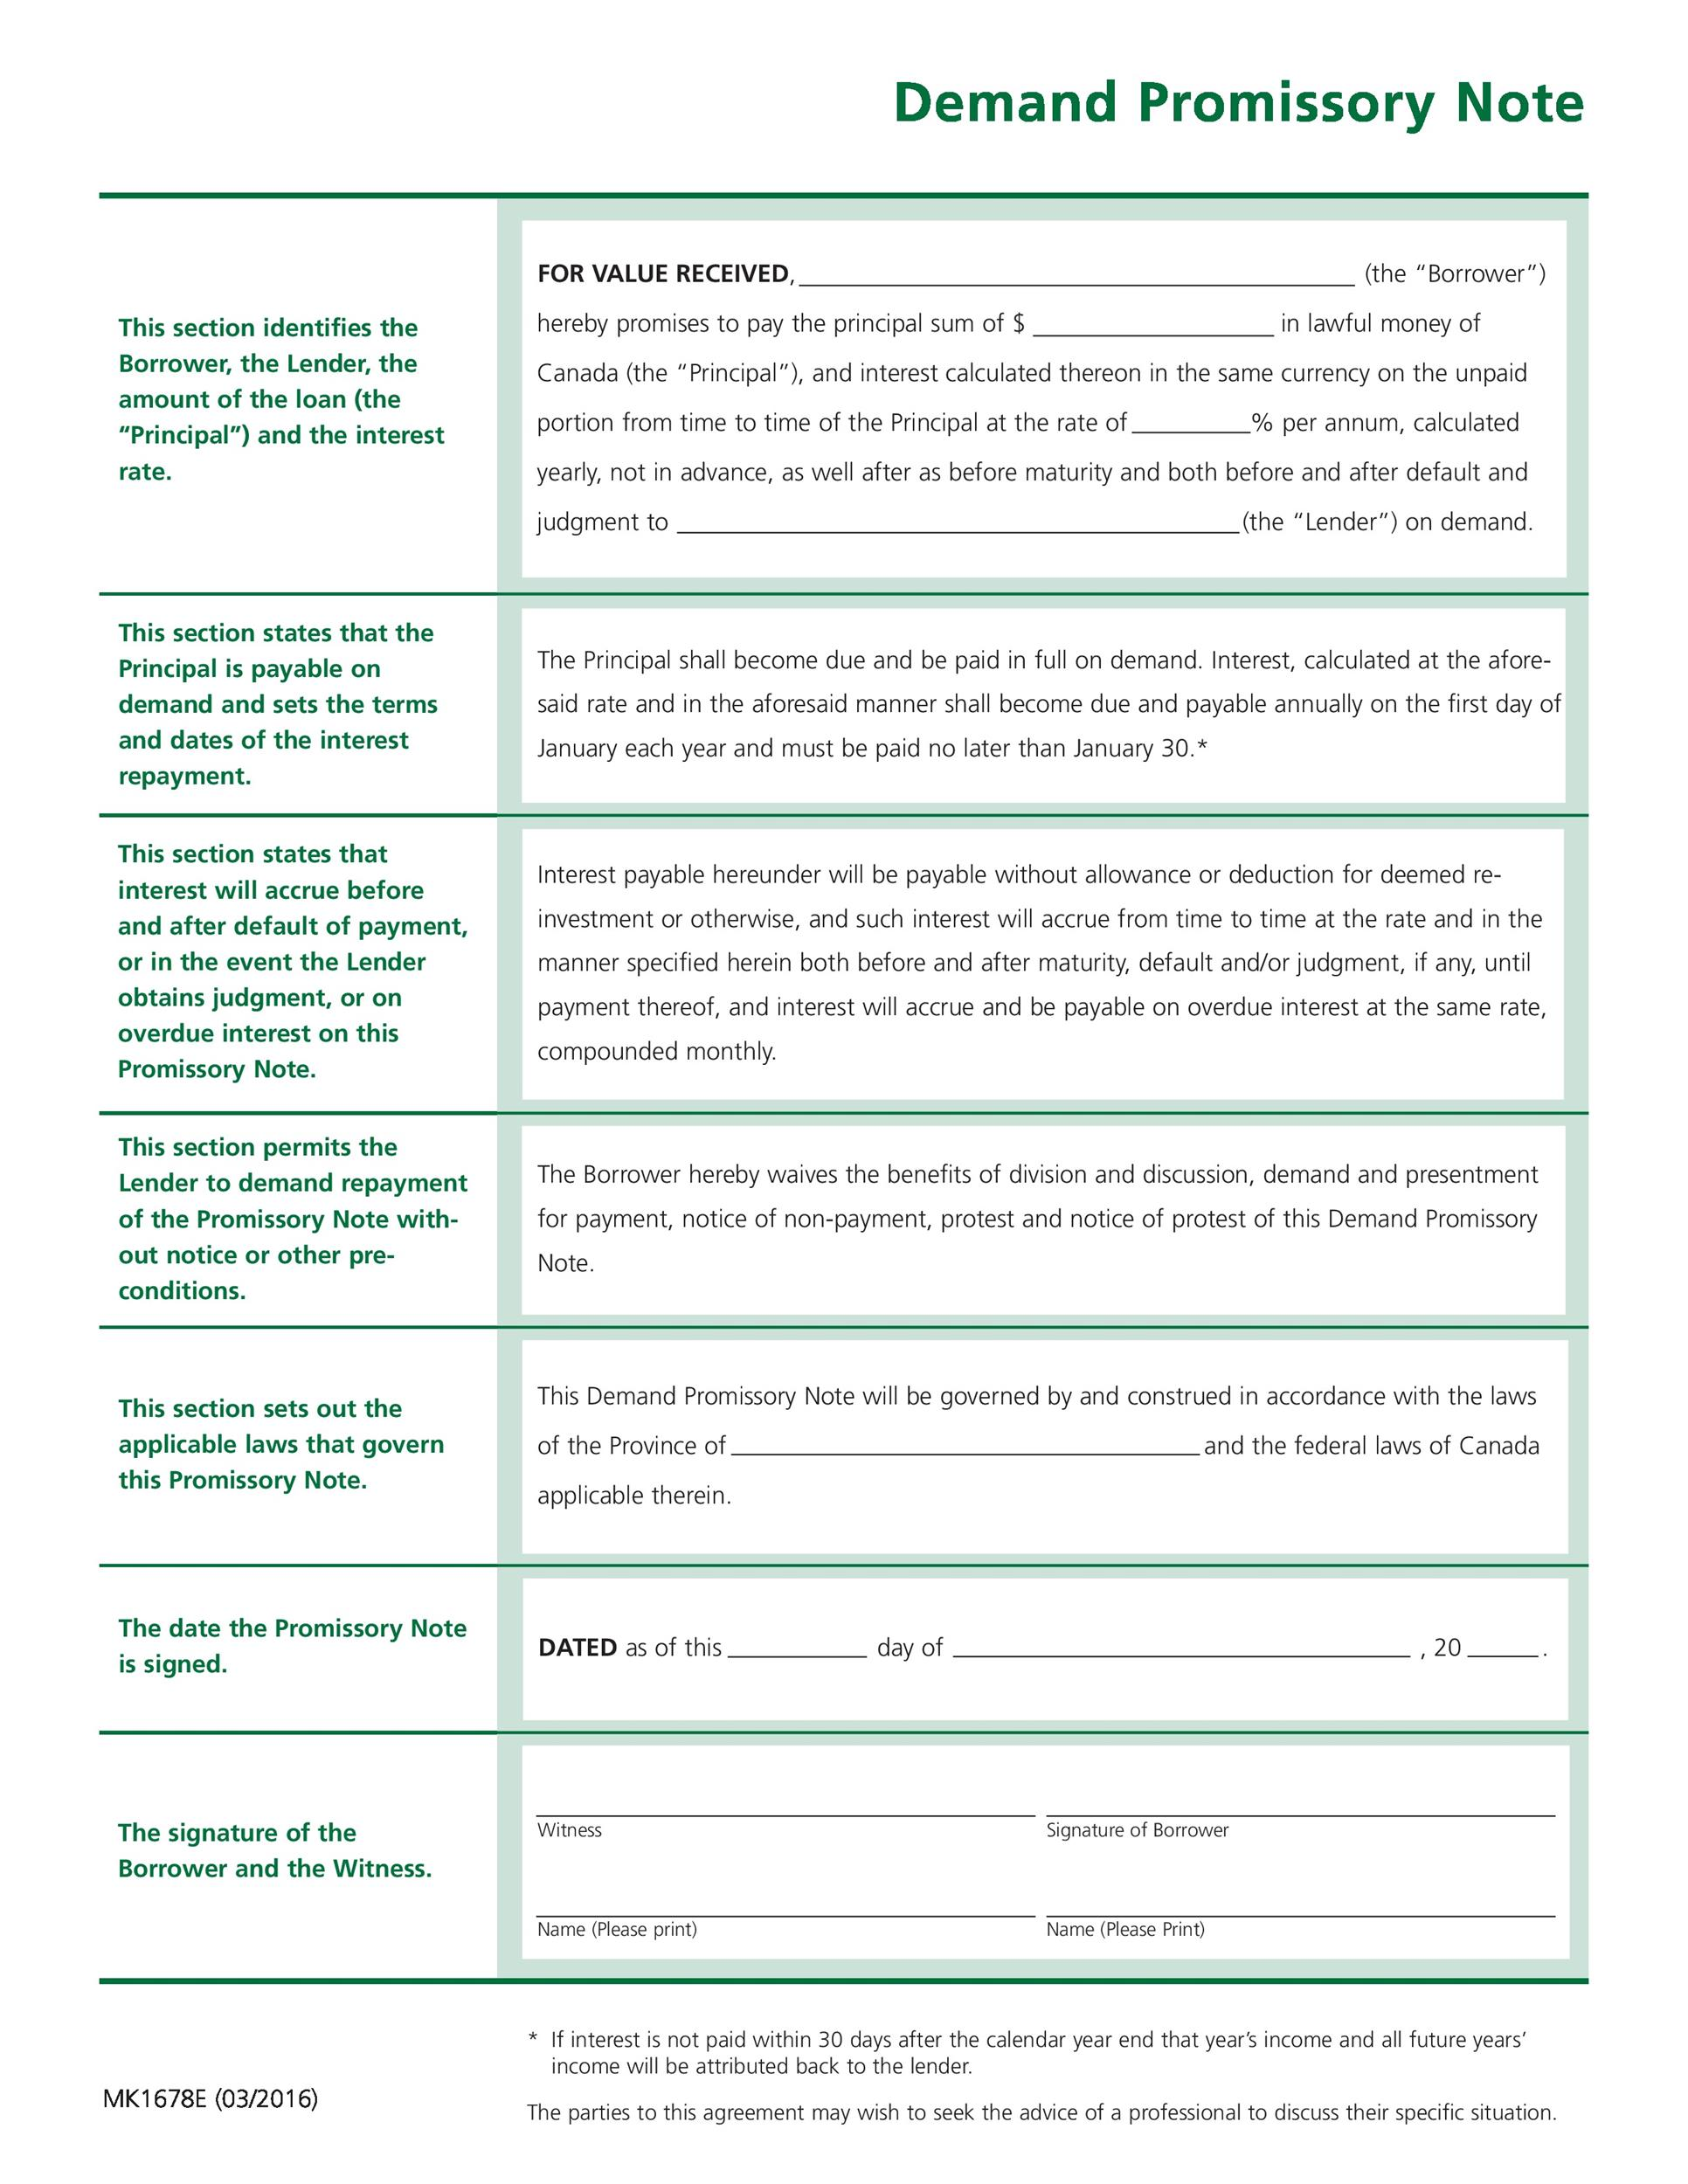 Draft Promissory Note Agreement Promissory Note Create a Free – Draft of Promissory Note